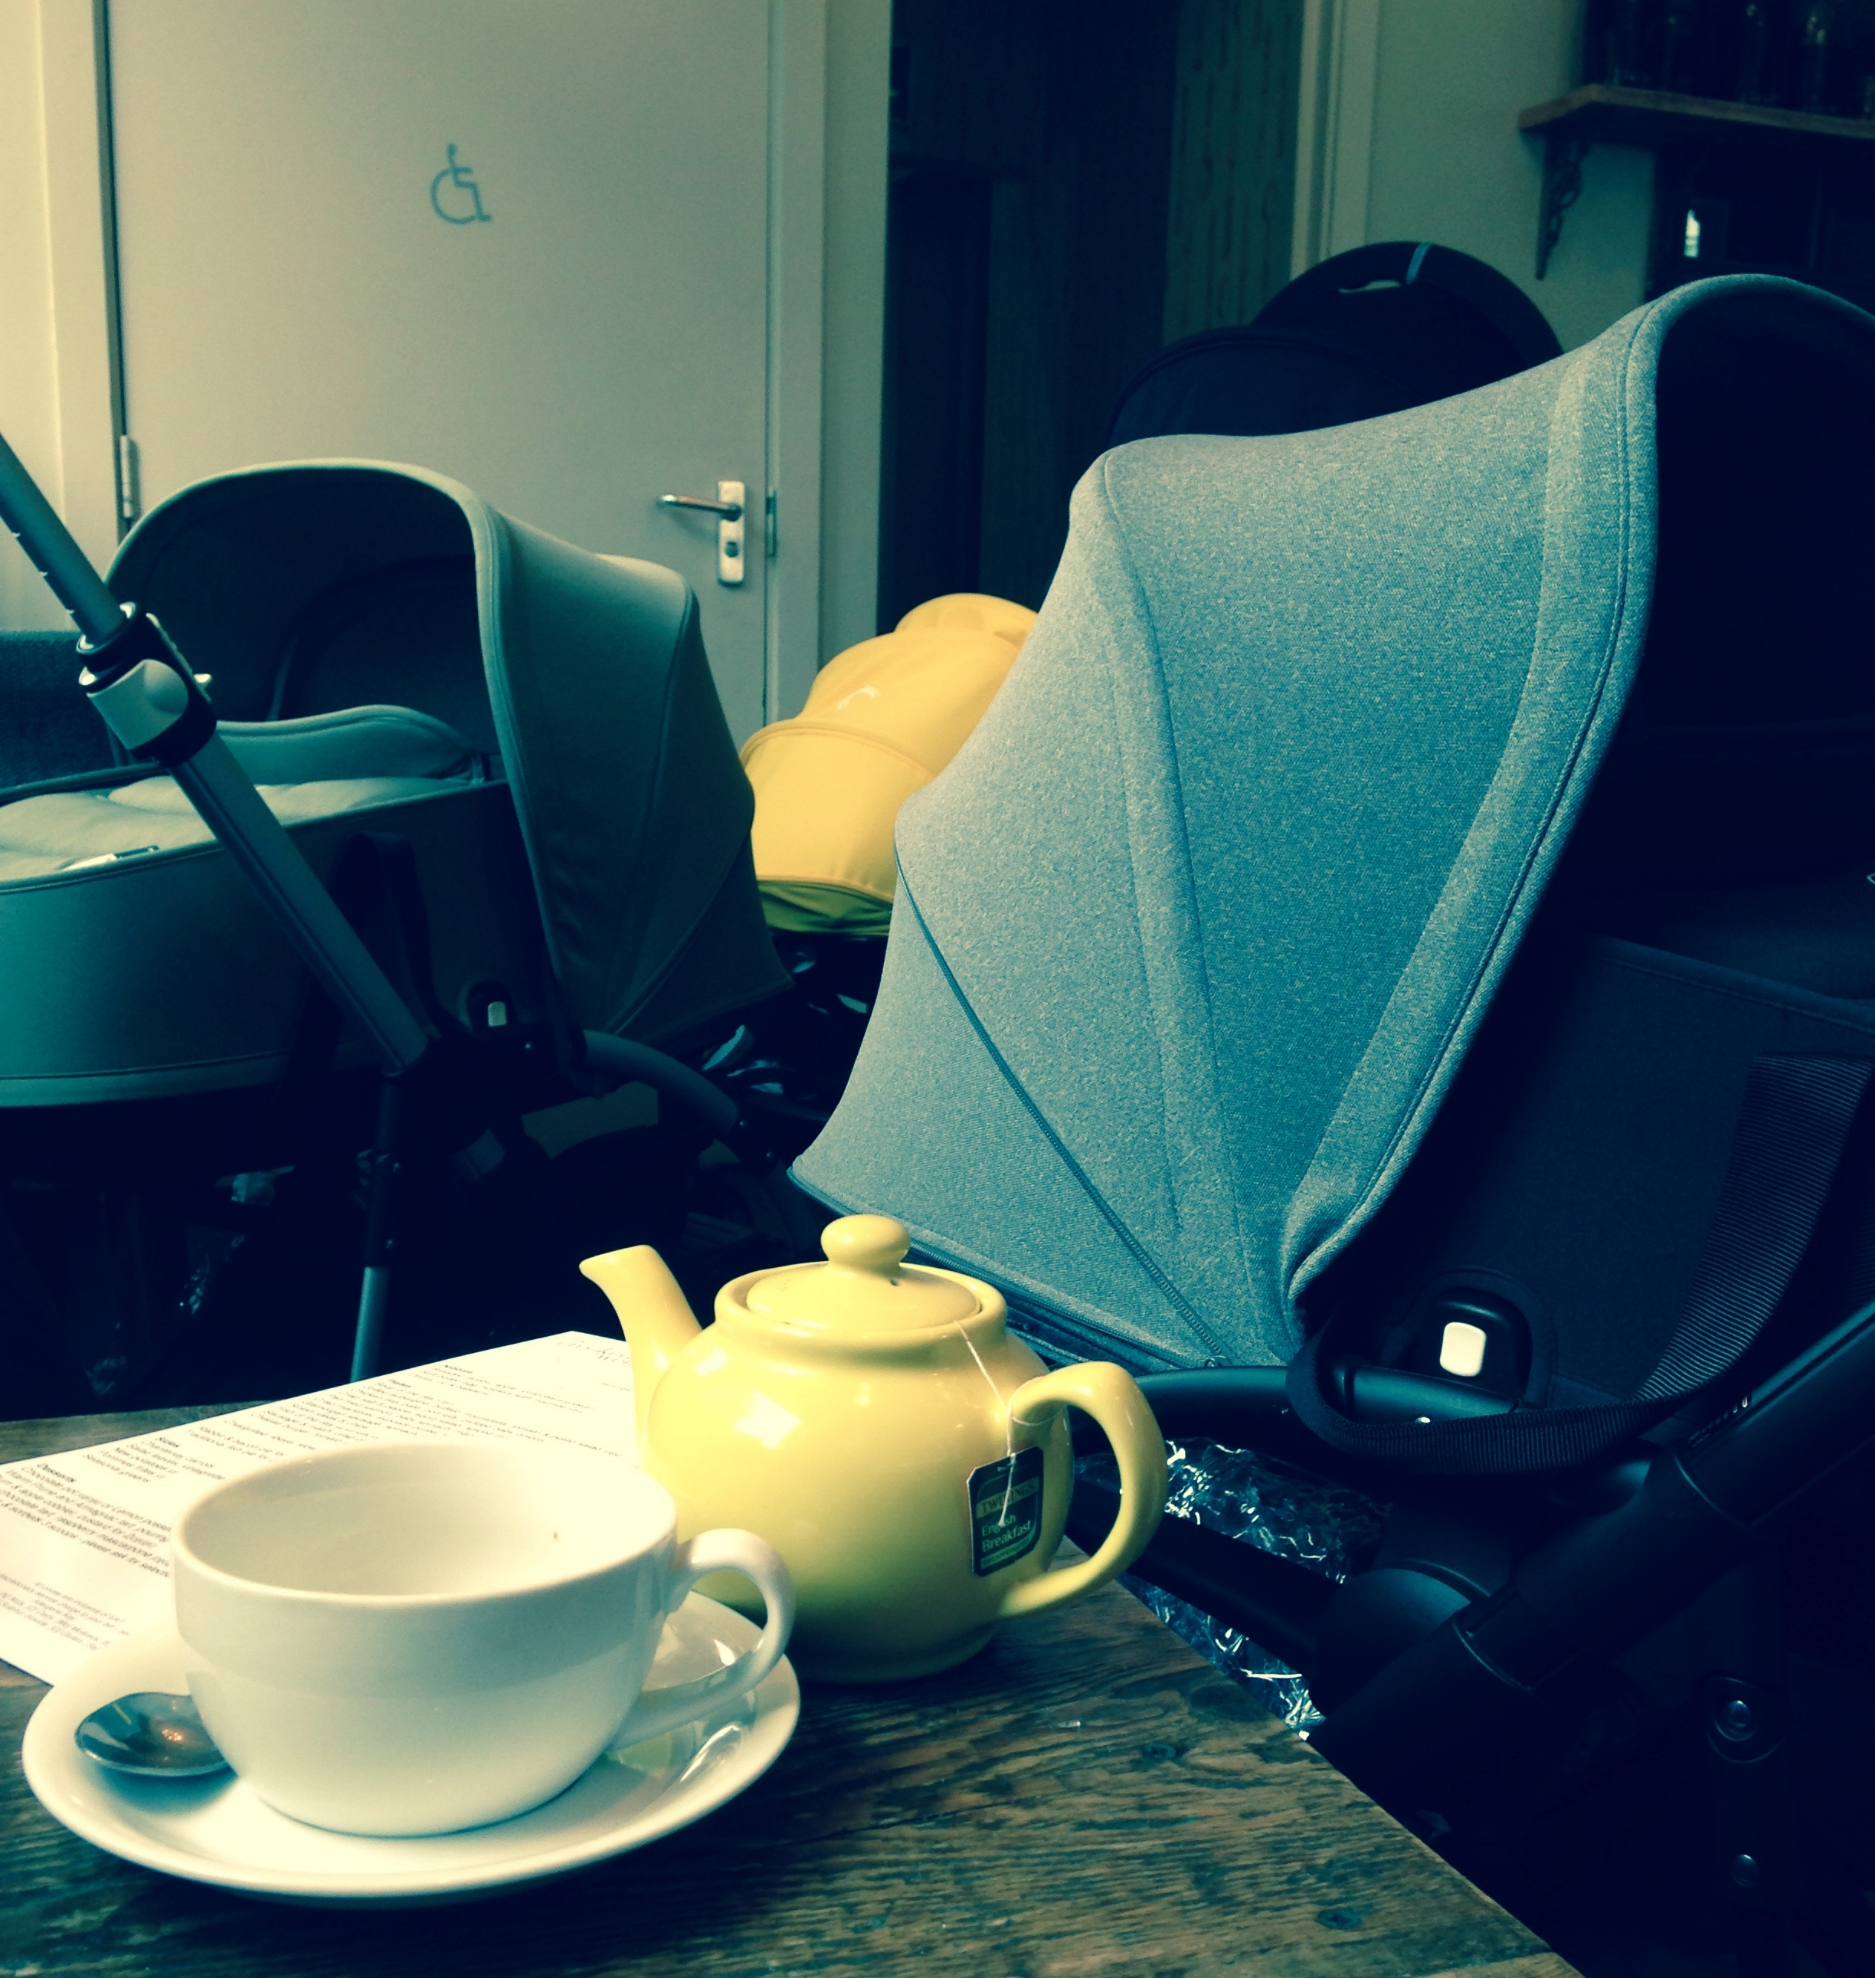 Bugaboo buggy park at the Crooked Well